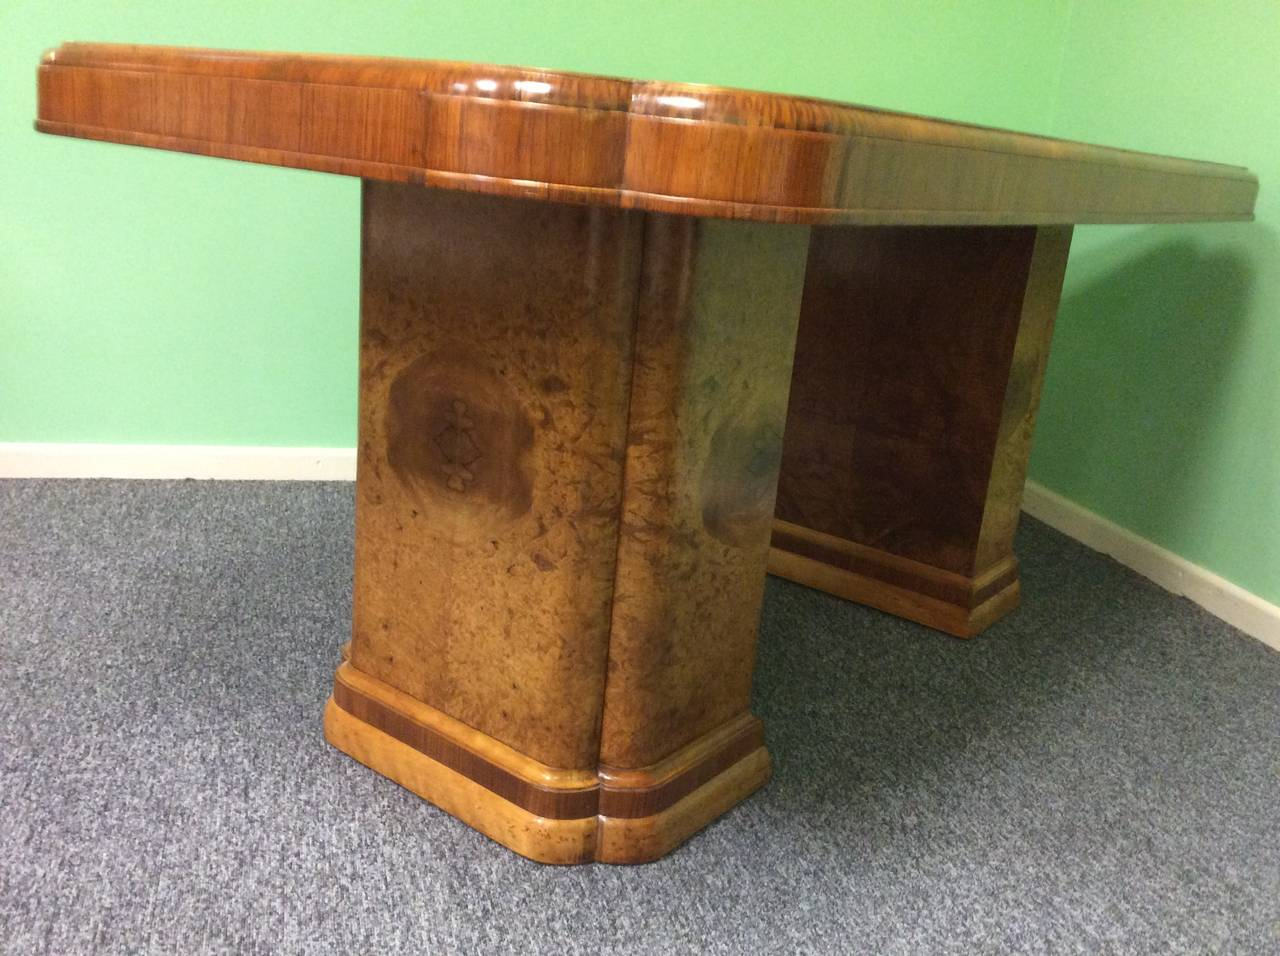 Art deco dining table by harry and lou epstein at 1stdibs - Epstein art deco furniture ...